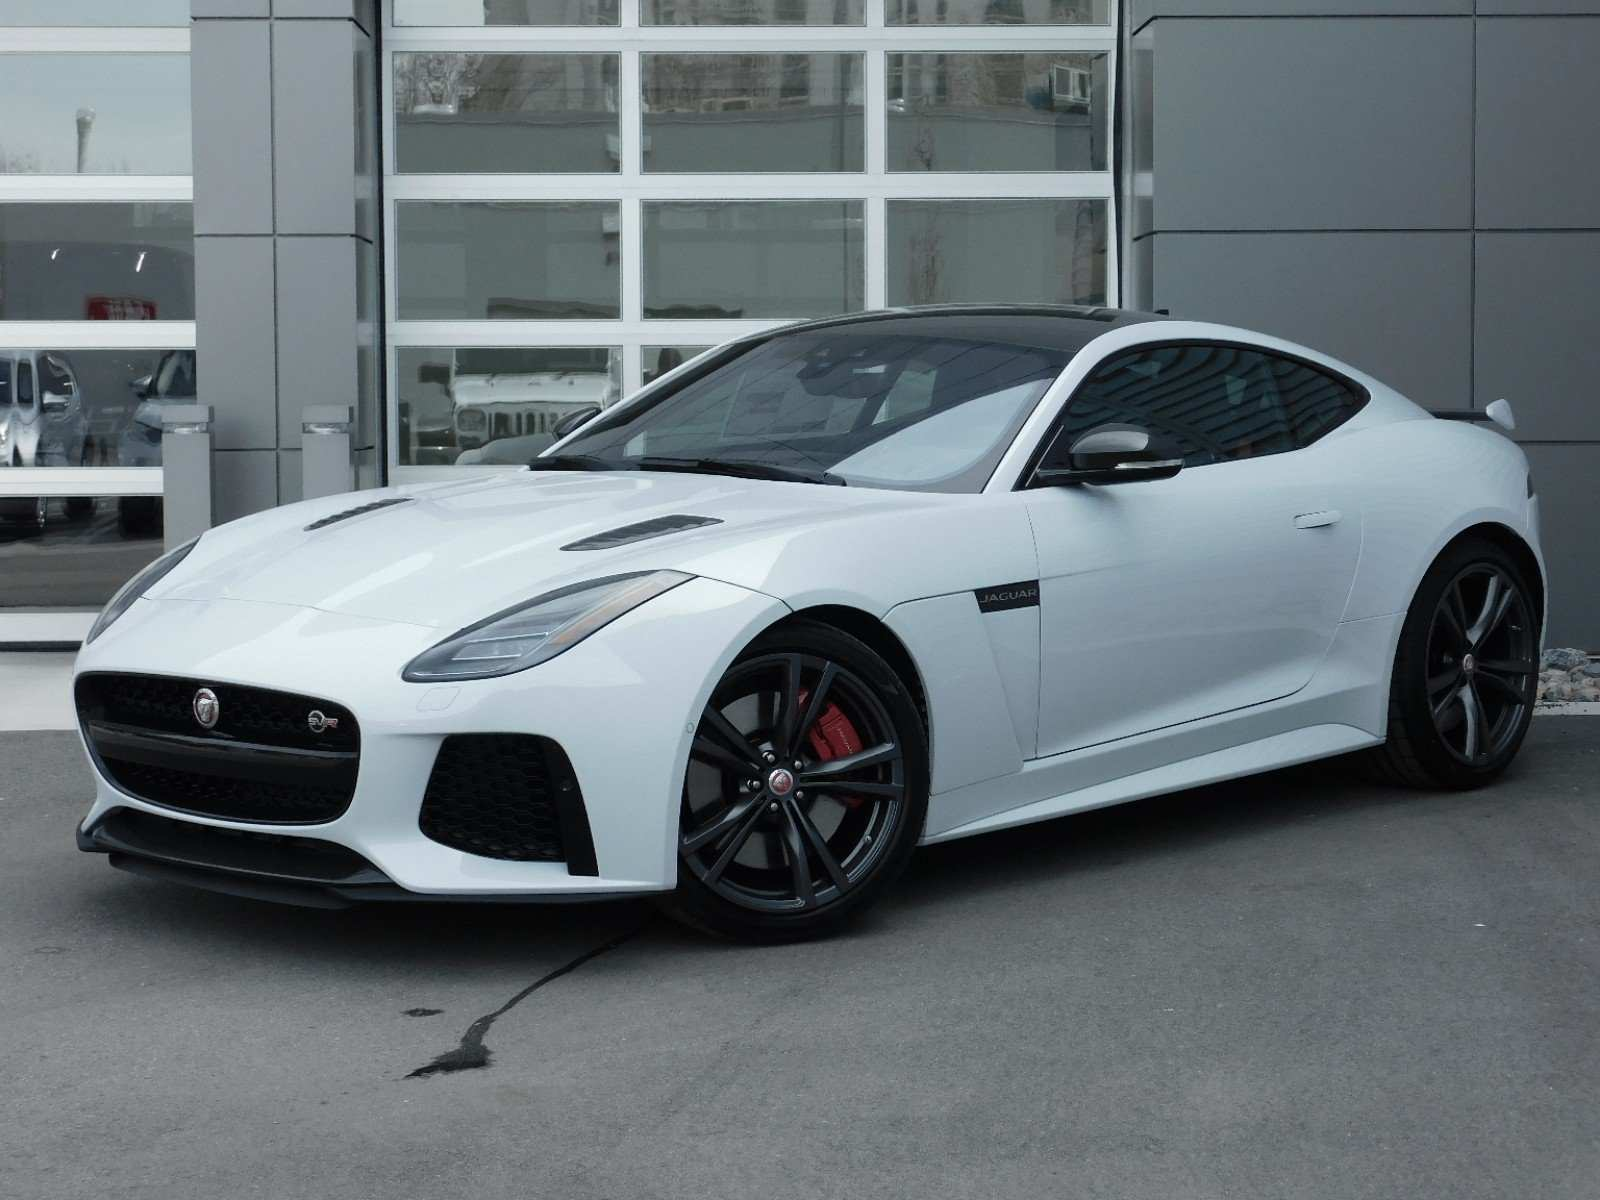 95 The Jaguar F Type 2020 First Drive for Jaguar F Type 2020